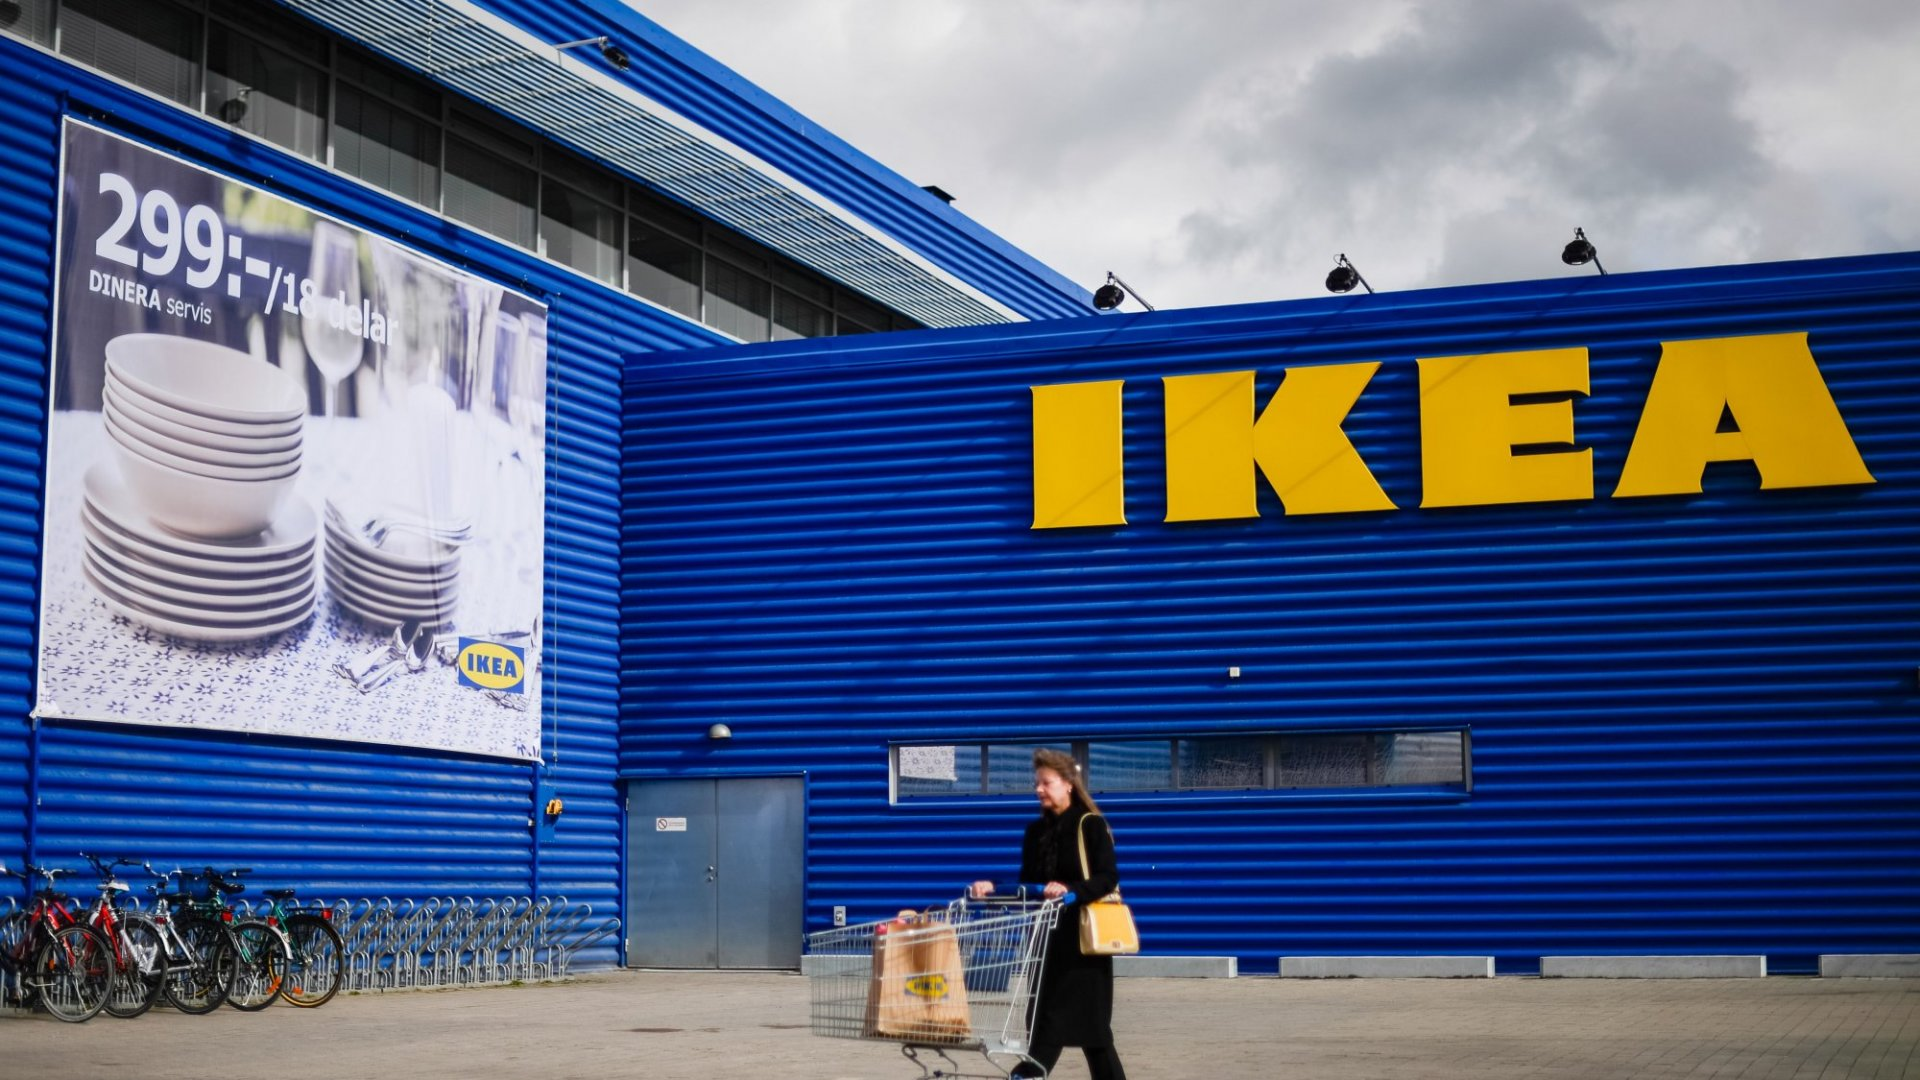 Ikea Just Made a Big Announcement That Could Forever Change How We Shop for Furniture